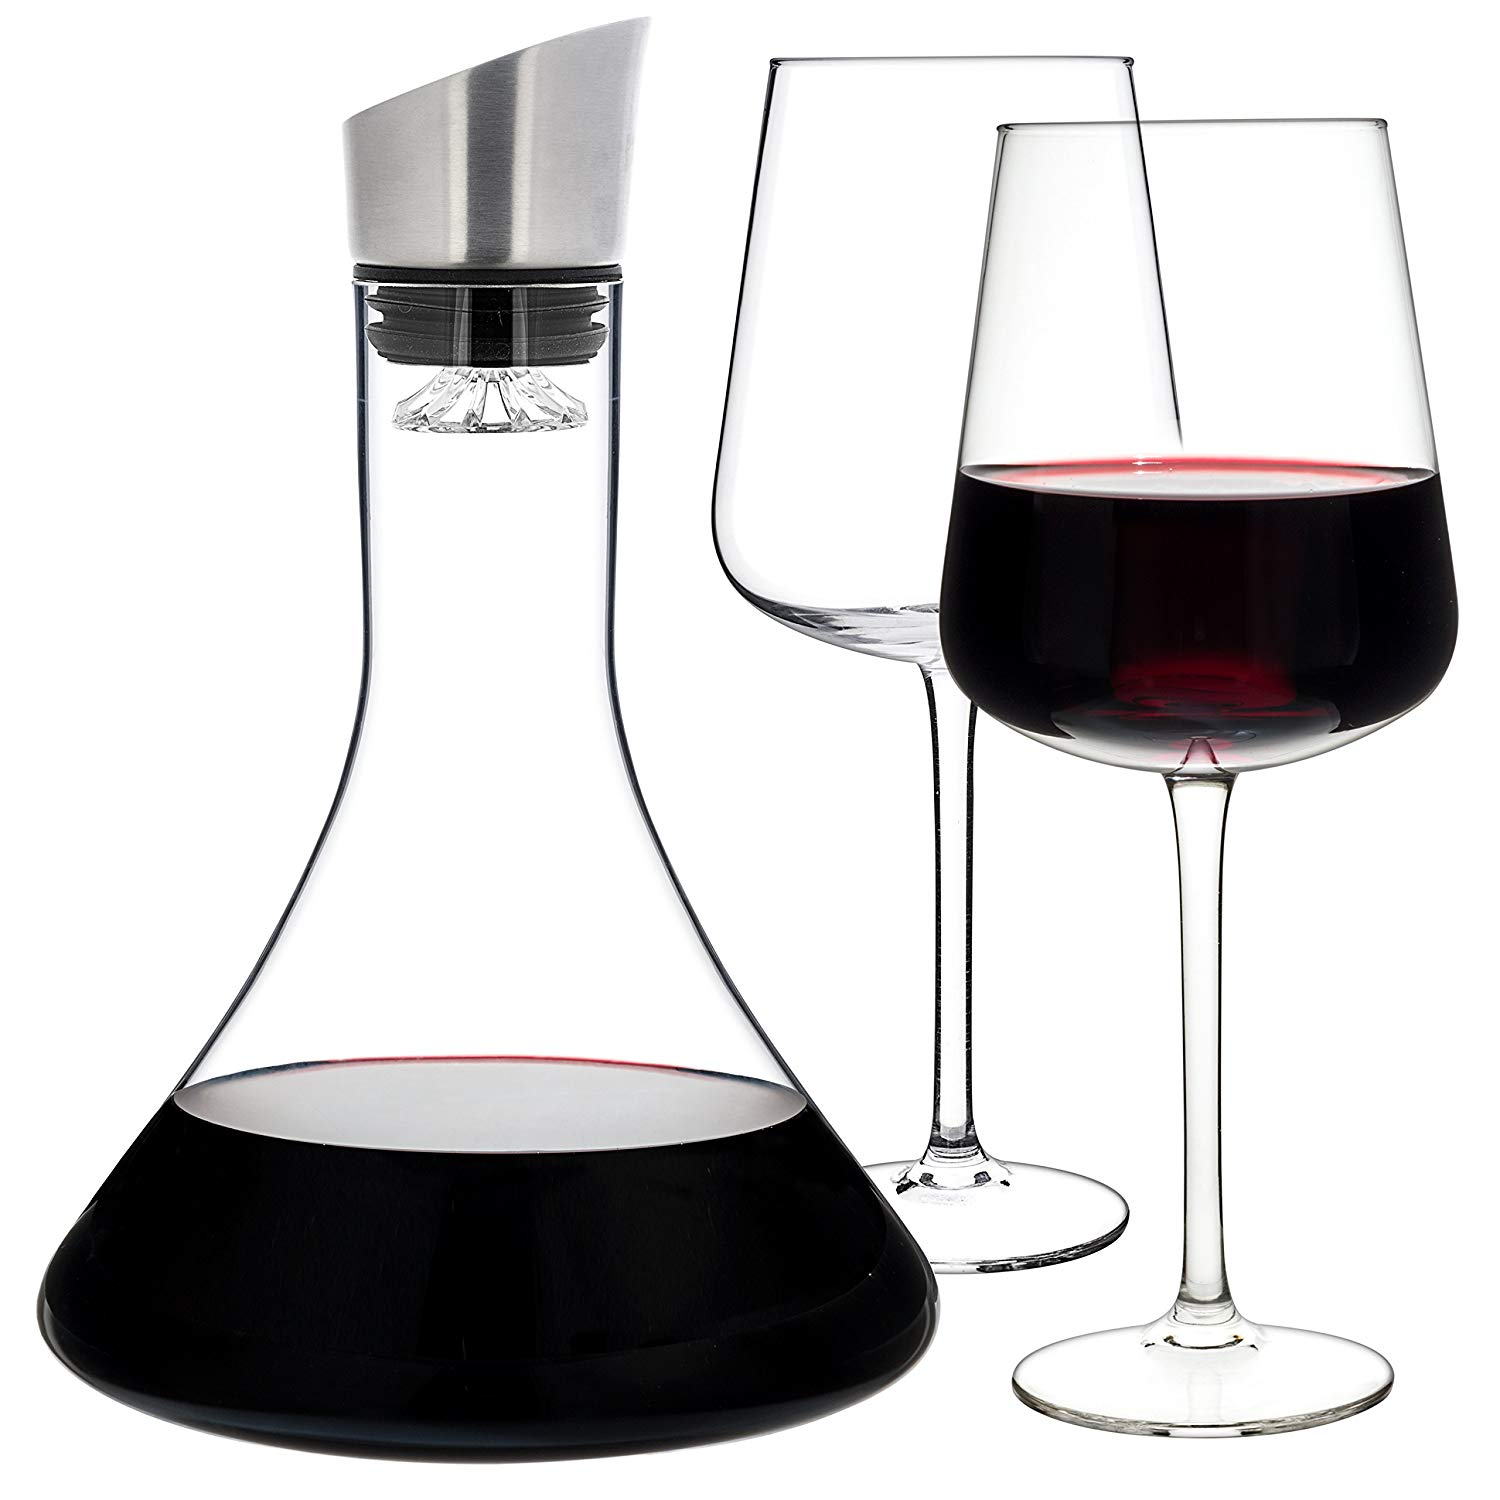 Luxbe - Wine Decanter 54-ounce and Aerator Pourer Lid - With Two Crystal Glasses Set - Hand Blown Lead-free Crystal Glass, Red Wine Carafe - Descanter with Stainless Steel Lid-Aerator, Filter, Pourer